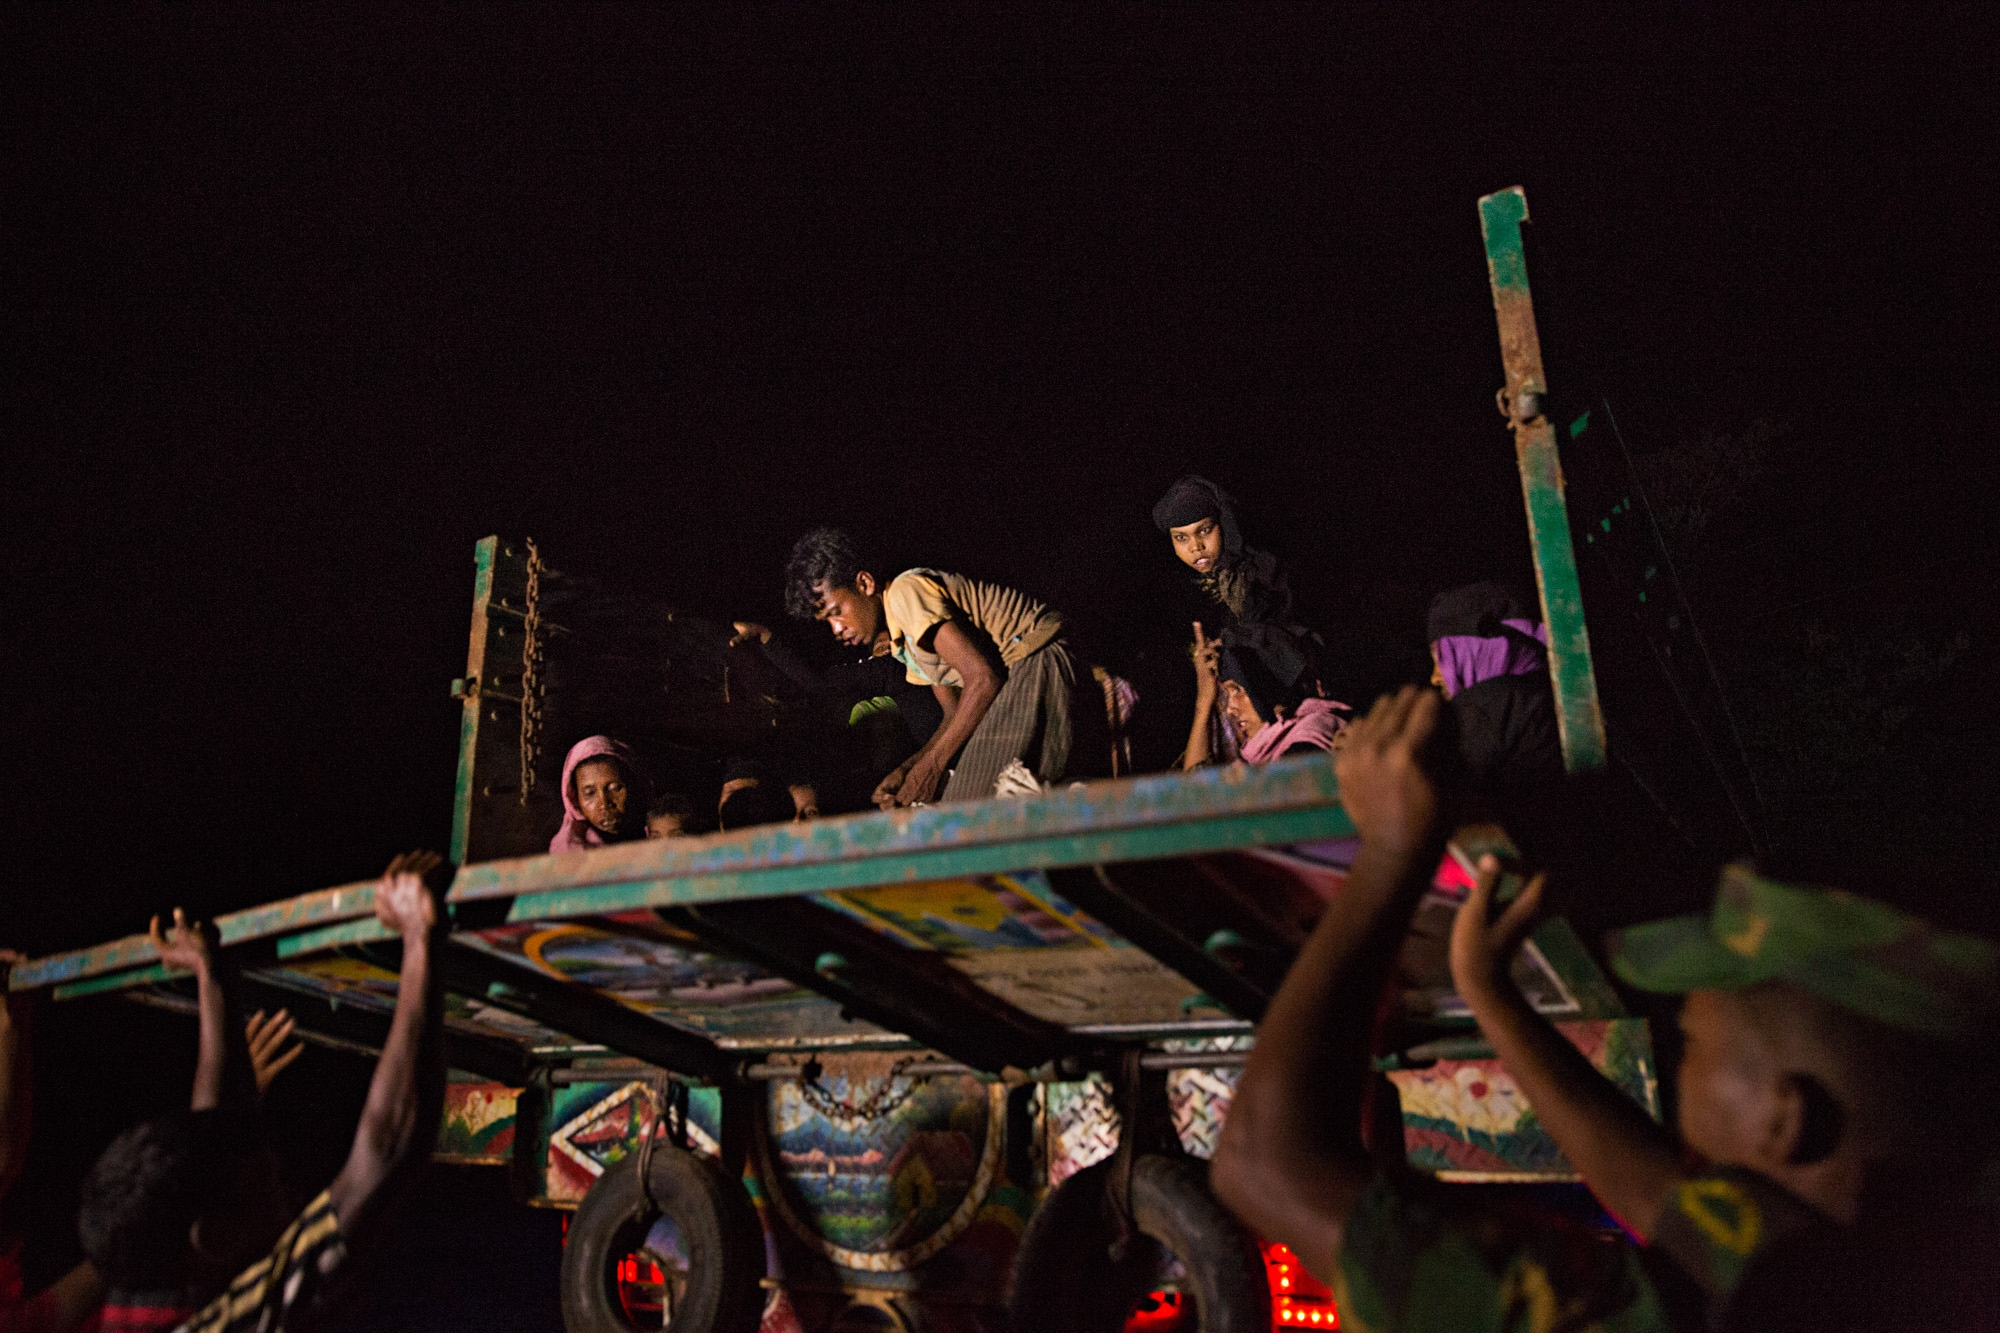 Rohingya refugees are loaded into a truck under the cover of darkness, after crossing the Naf River by boat from Myanmar to Bangladesh. The truck drives them to the camps where they will be left by the side of the road until they can be assigned a space to set up a tent.